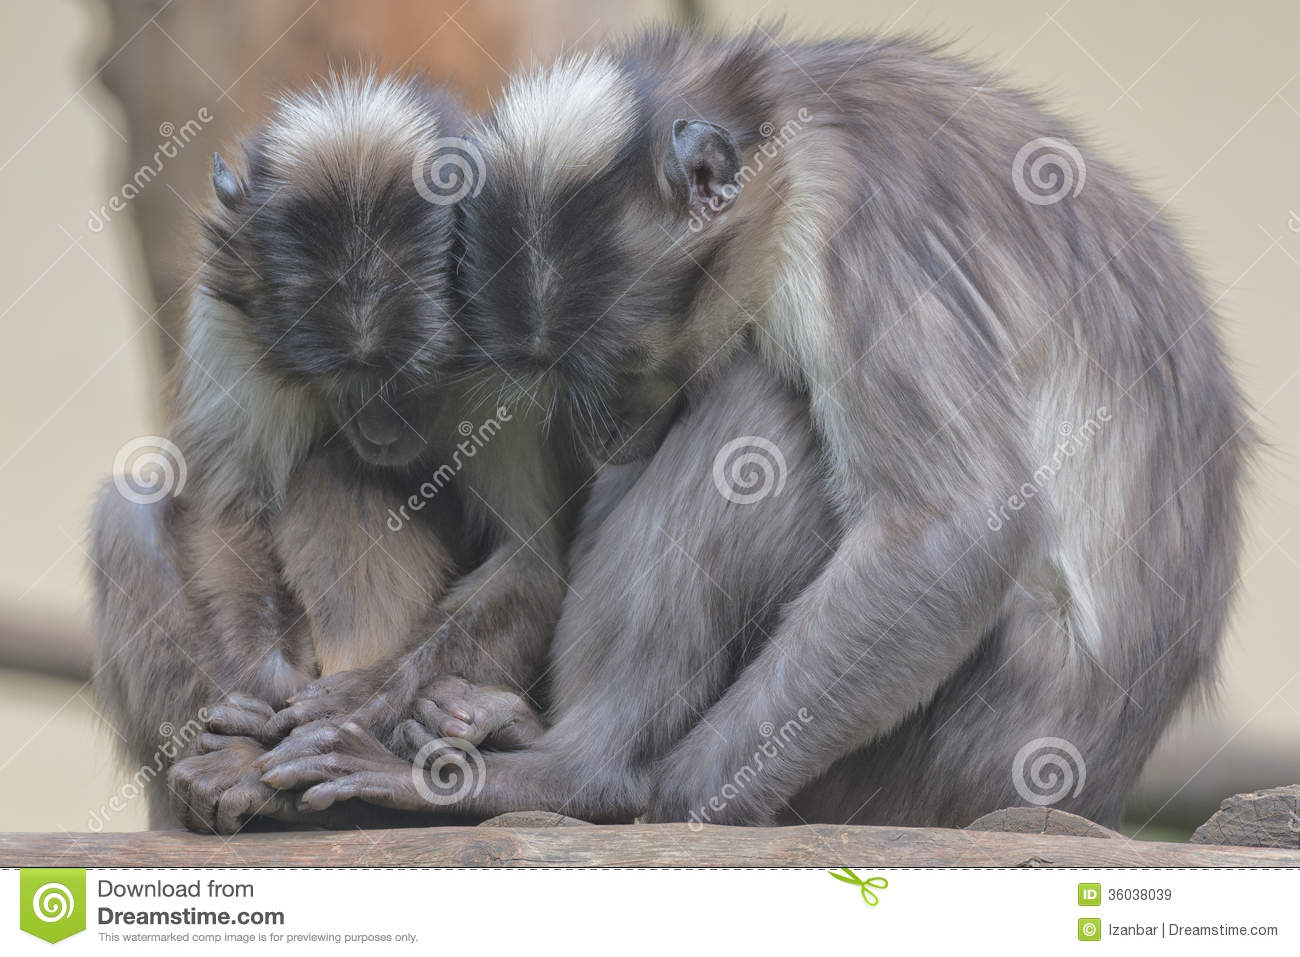 Two monkeys hugging drawing - photo#25